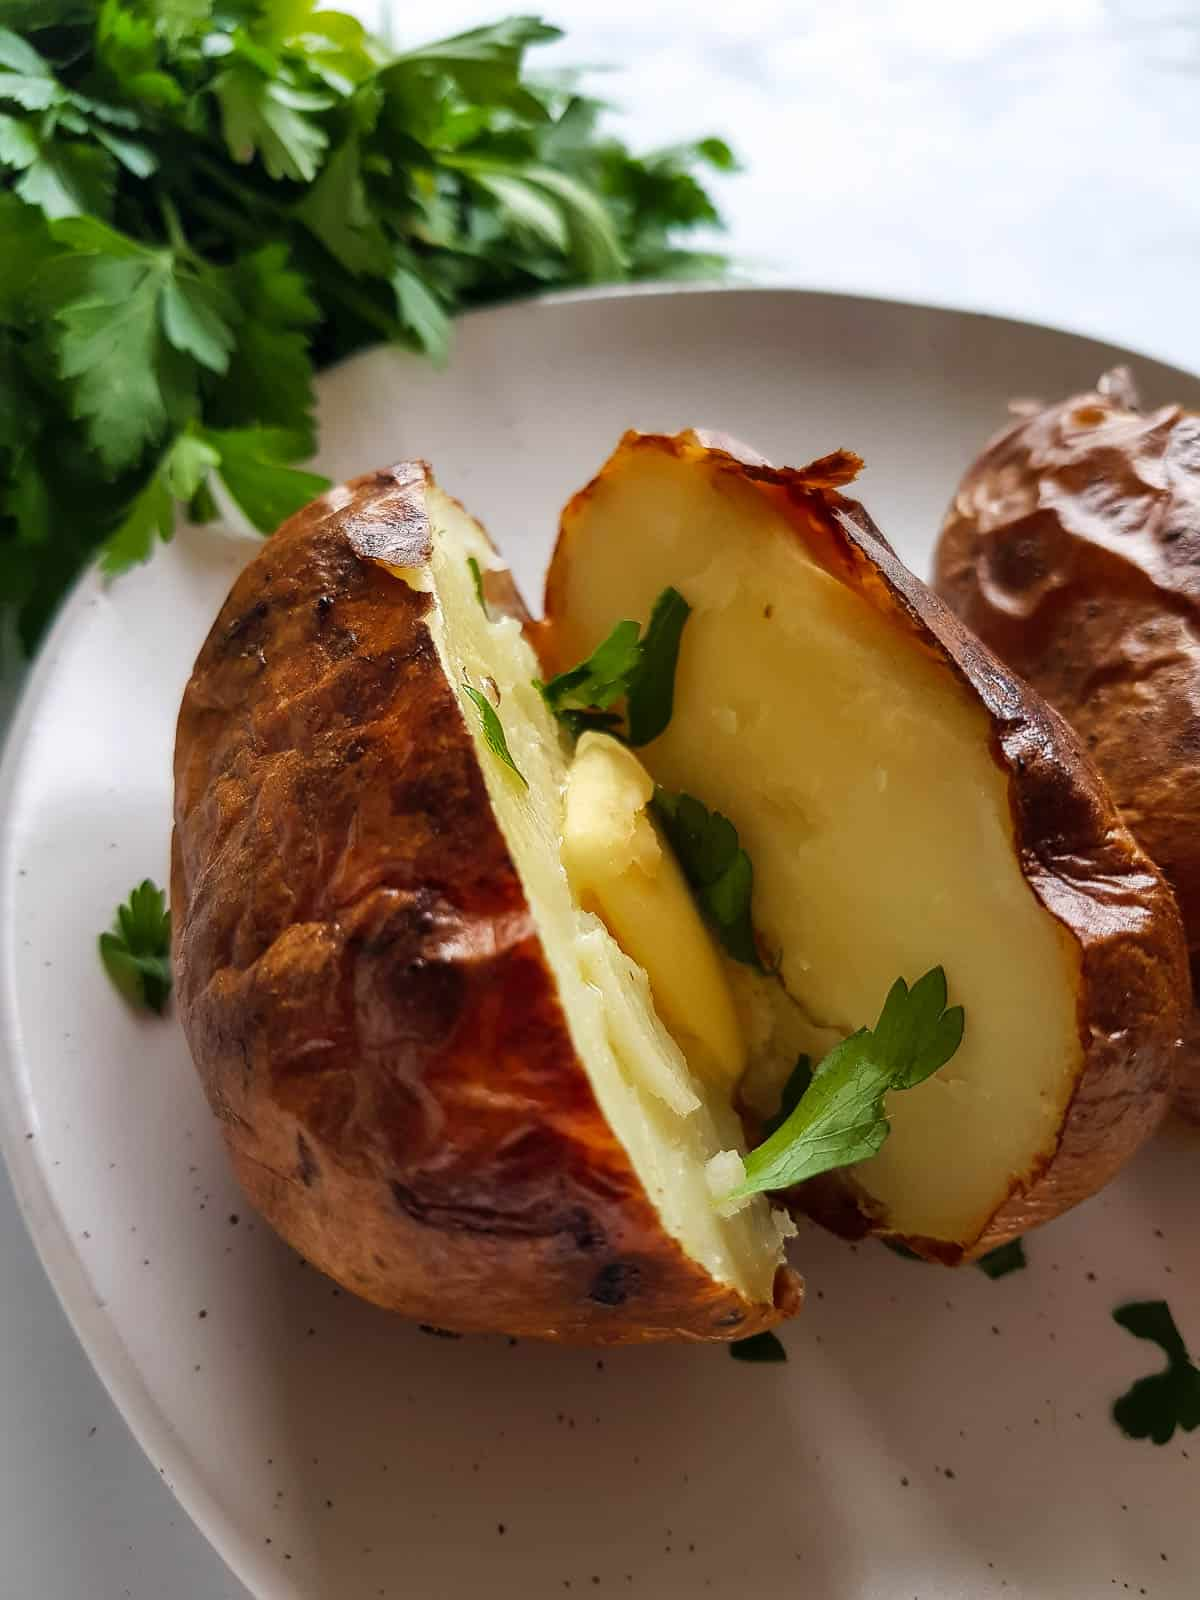 Close up of a baked potato with butter and parsley.